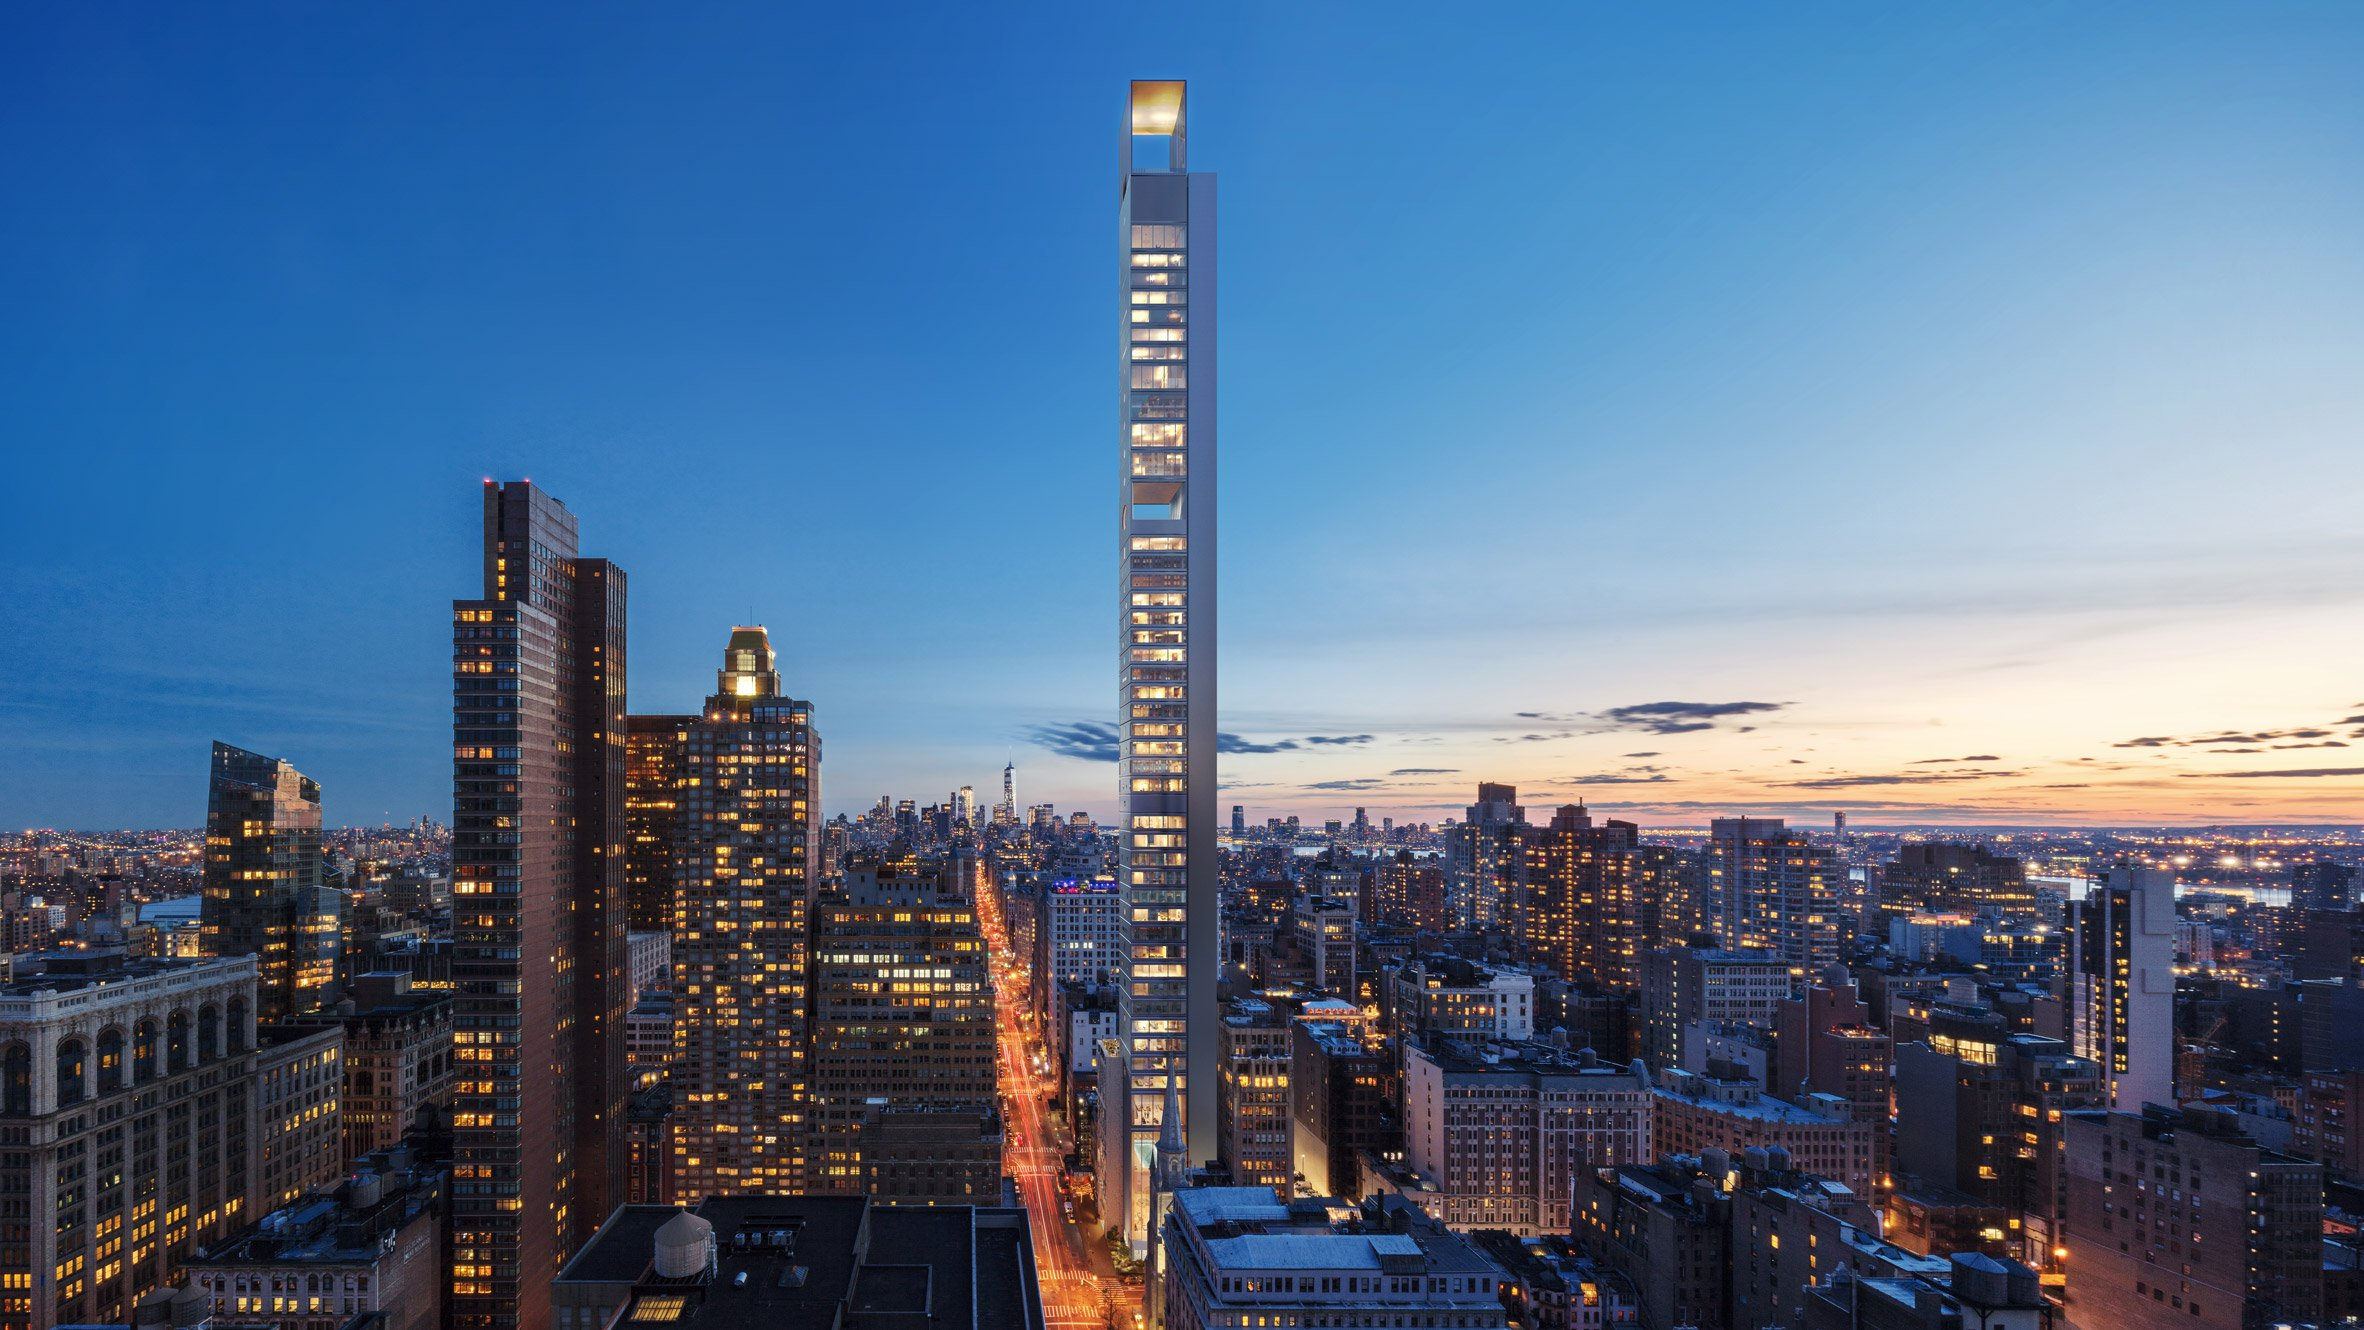 New York S Newest Supertall Skyscraper Preps For Its 1 001